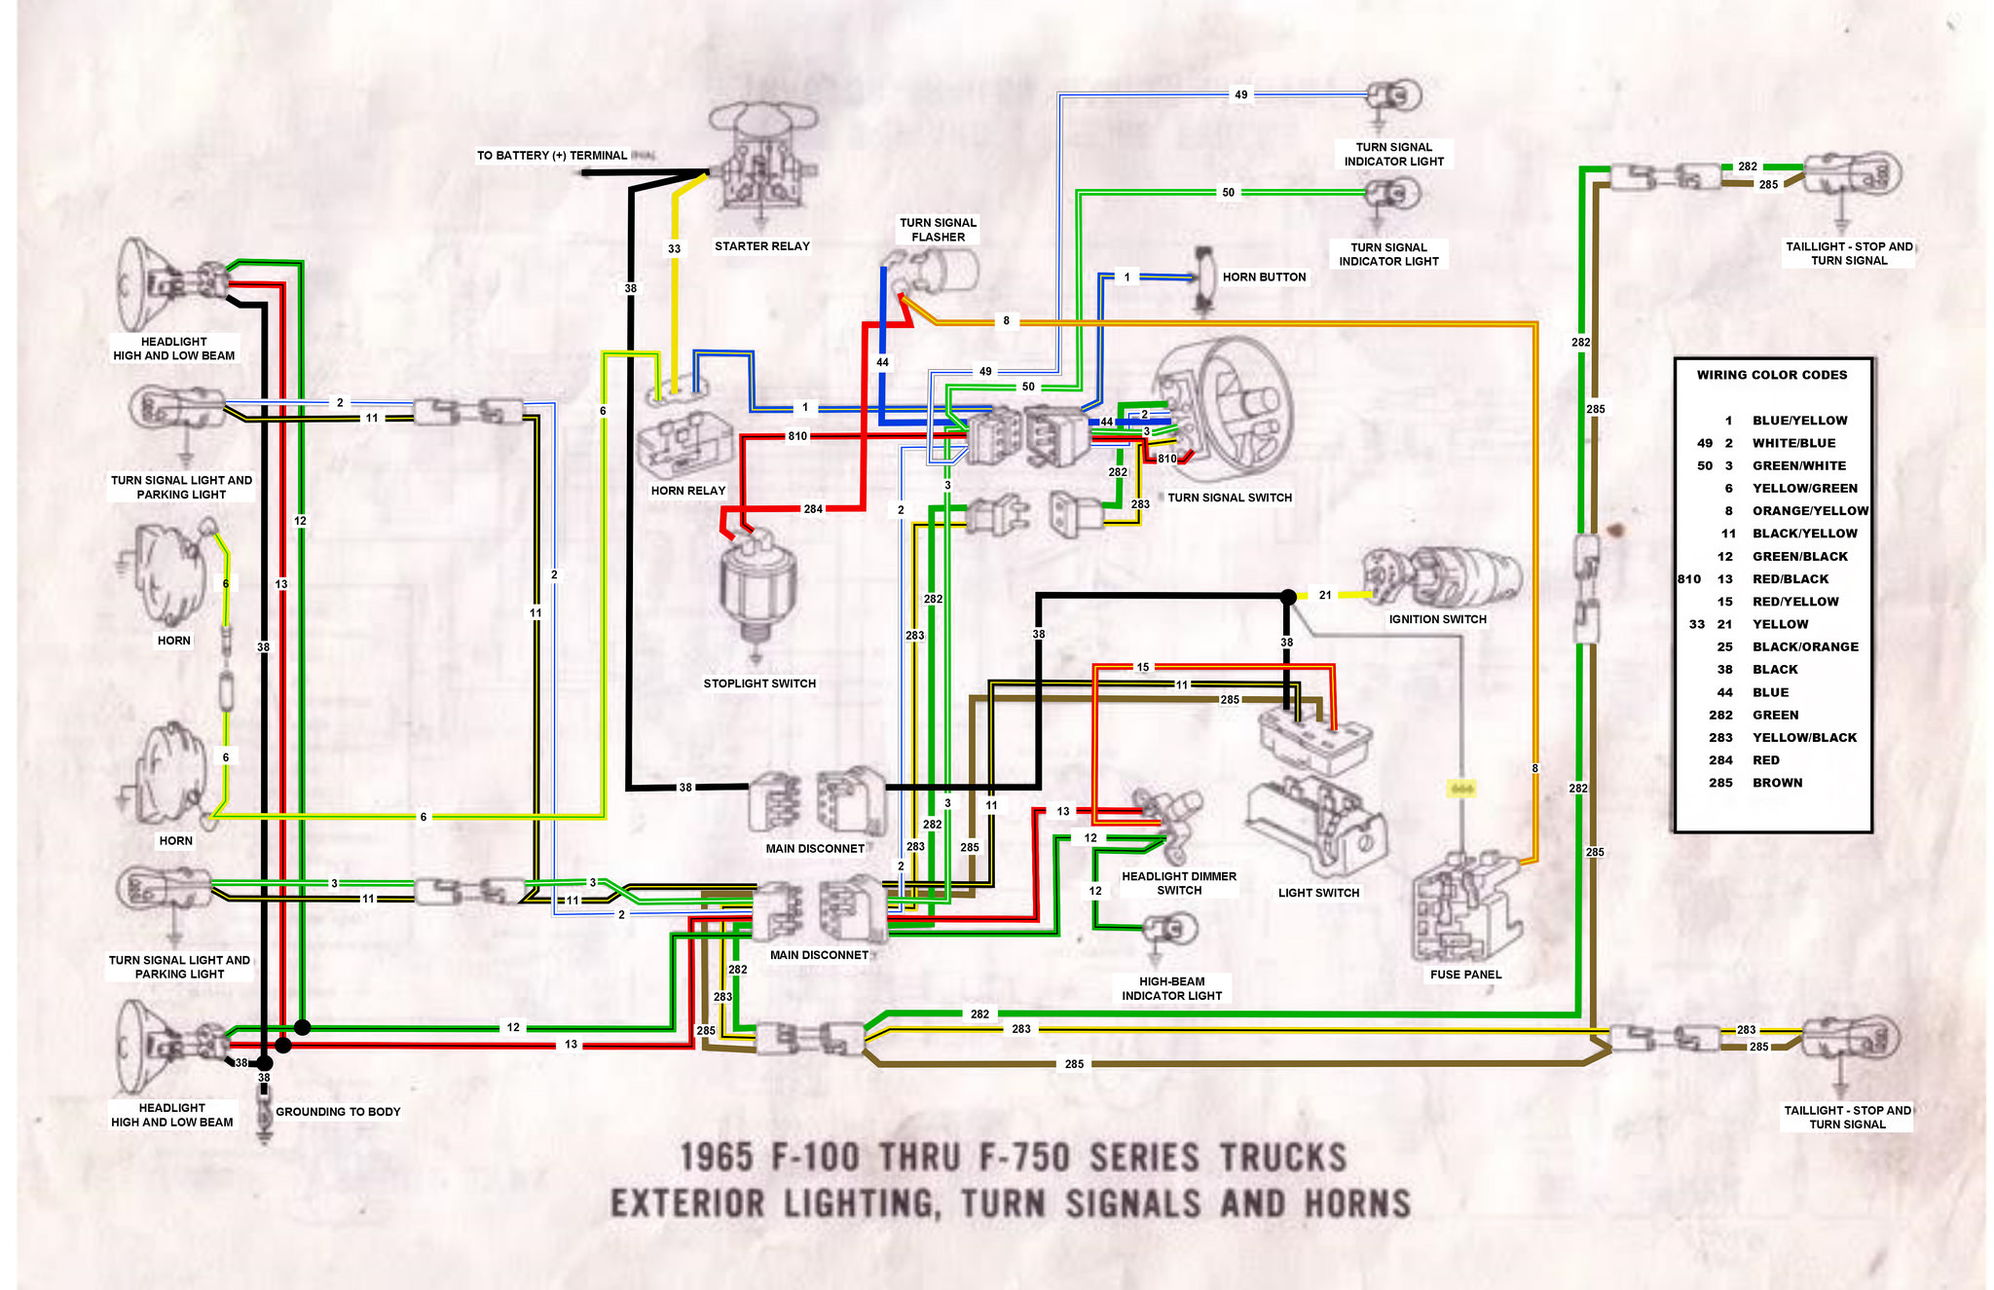 hight resolution of 2007 e250 fuse diagram wiring library rh 48 muehlwald de 2007 ford e250 fuse box diagram 2007 ford econoline e250 fuse diagram